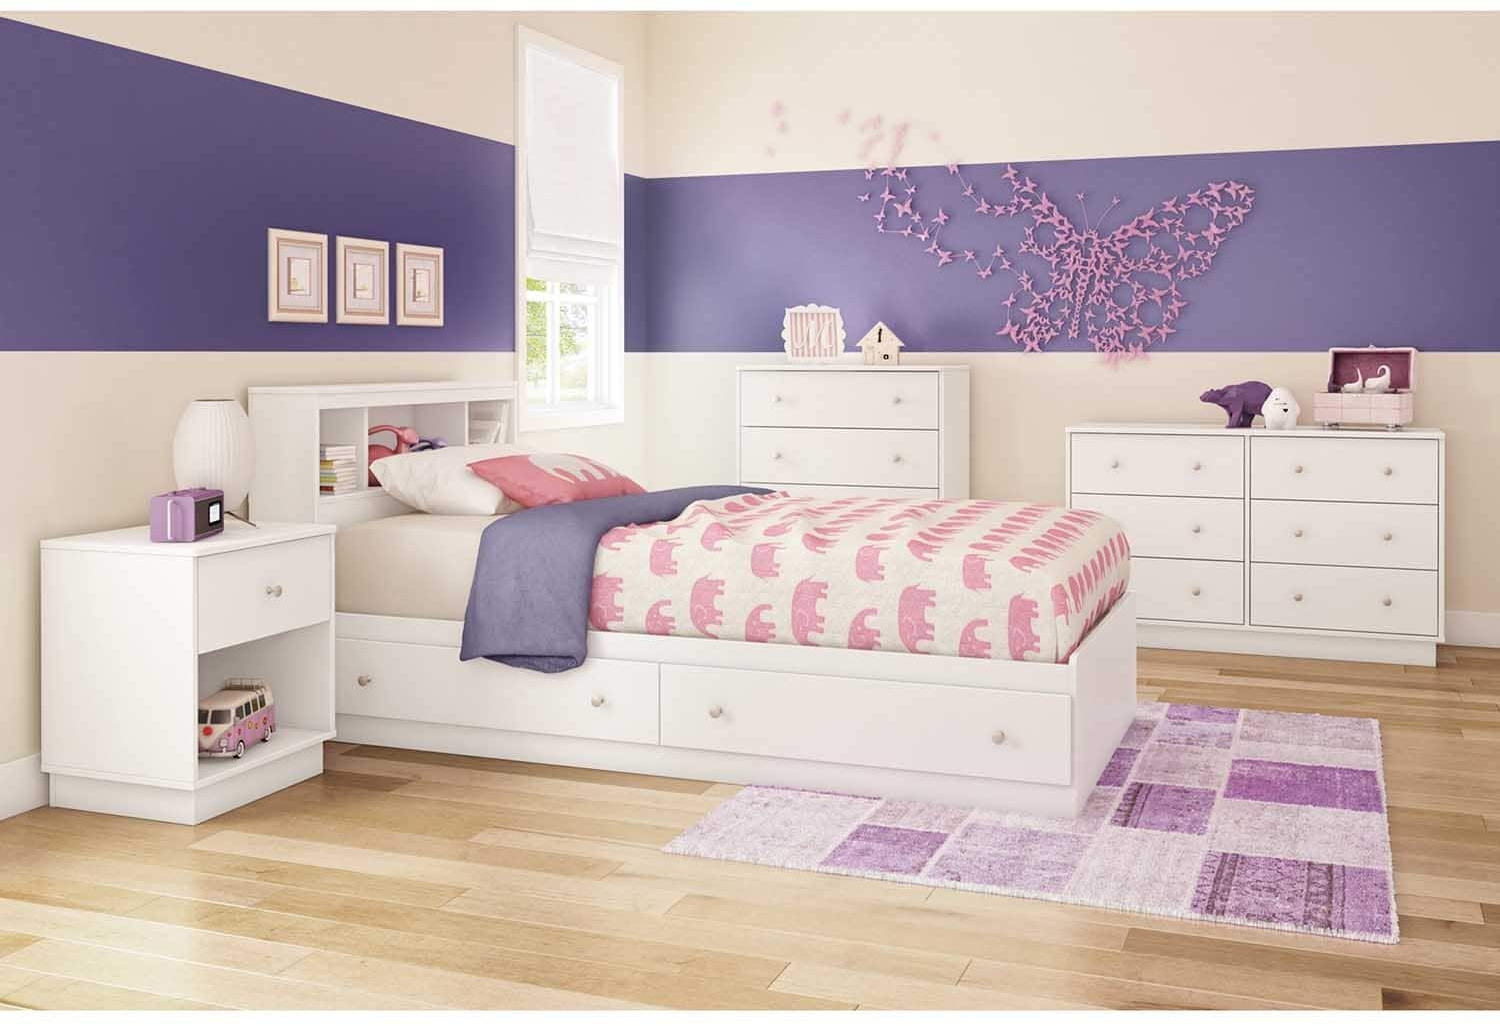 Details About White 39in Twin Bookcase Headboard Kids Toddler Baby Bedroom Playroom